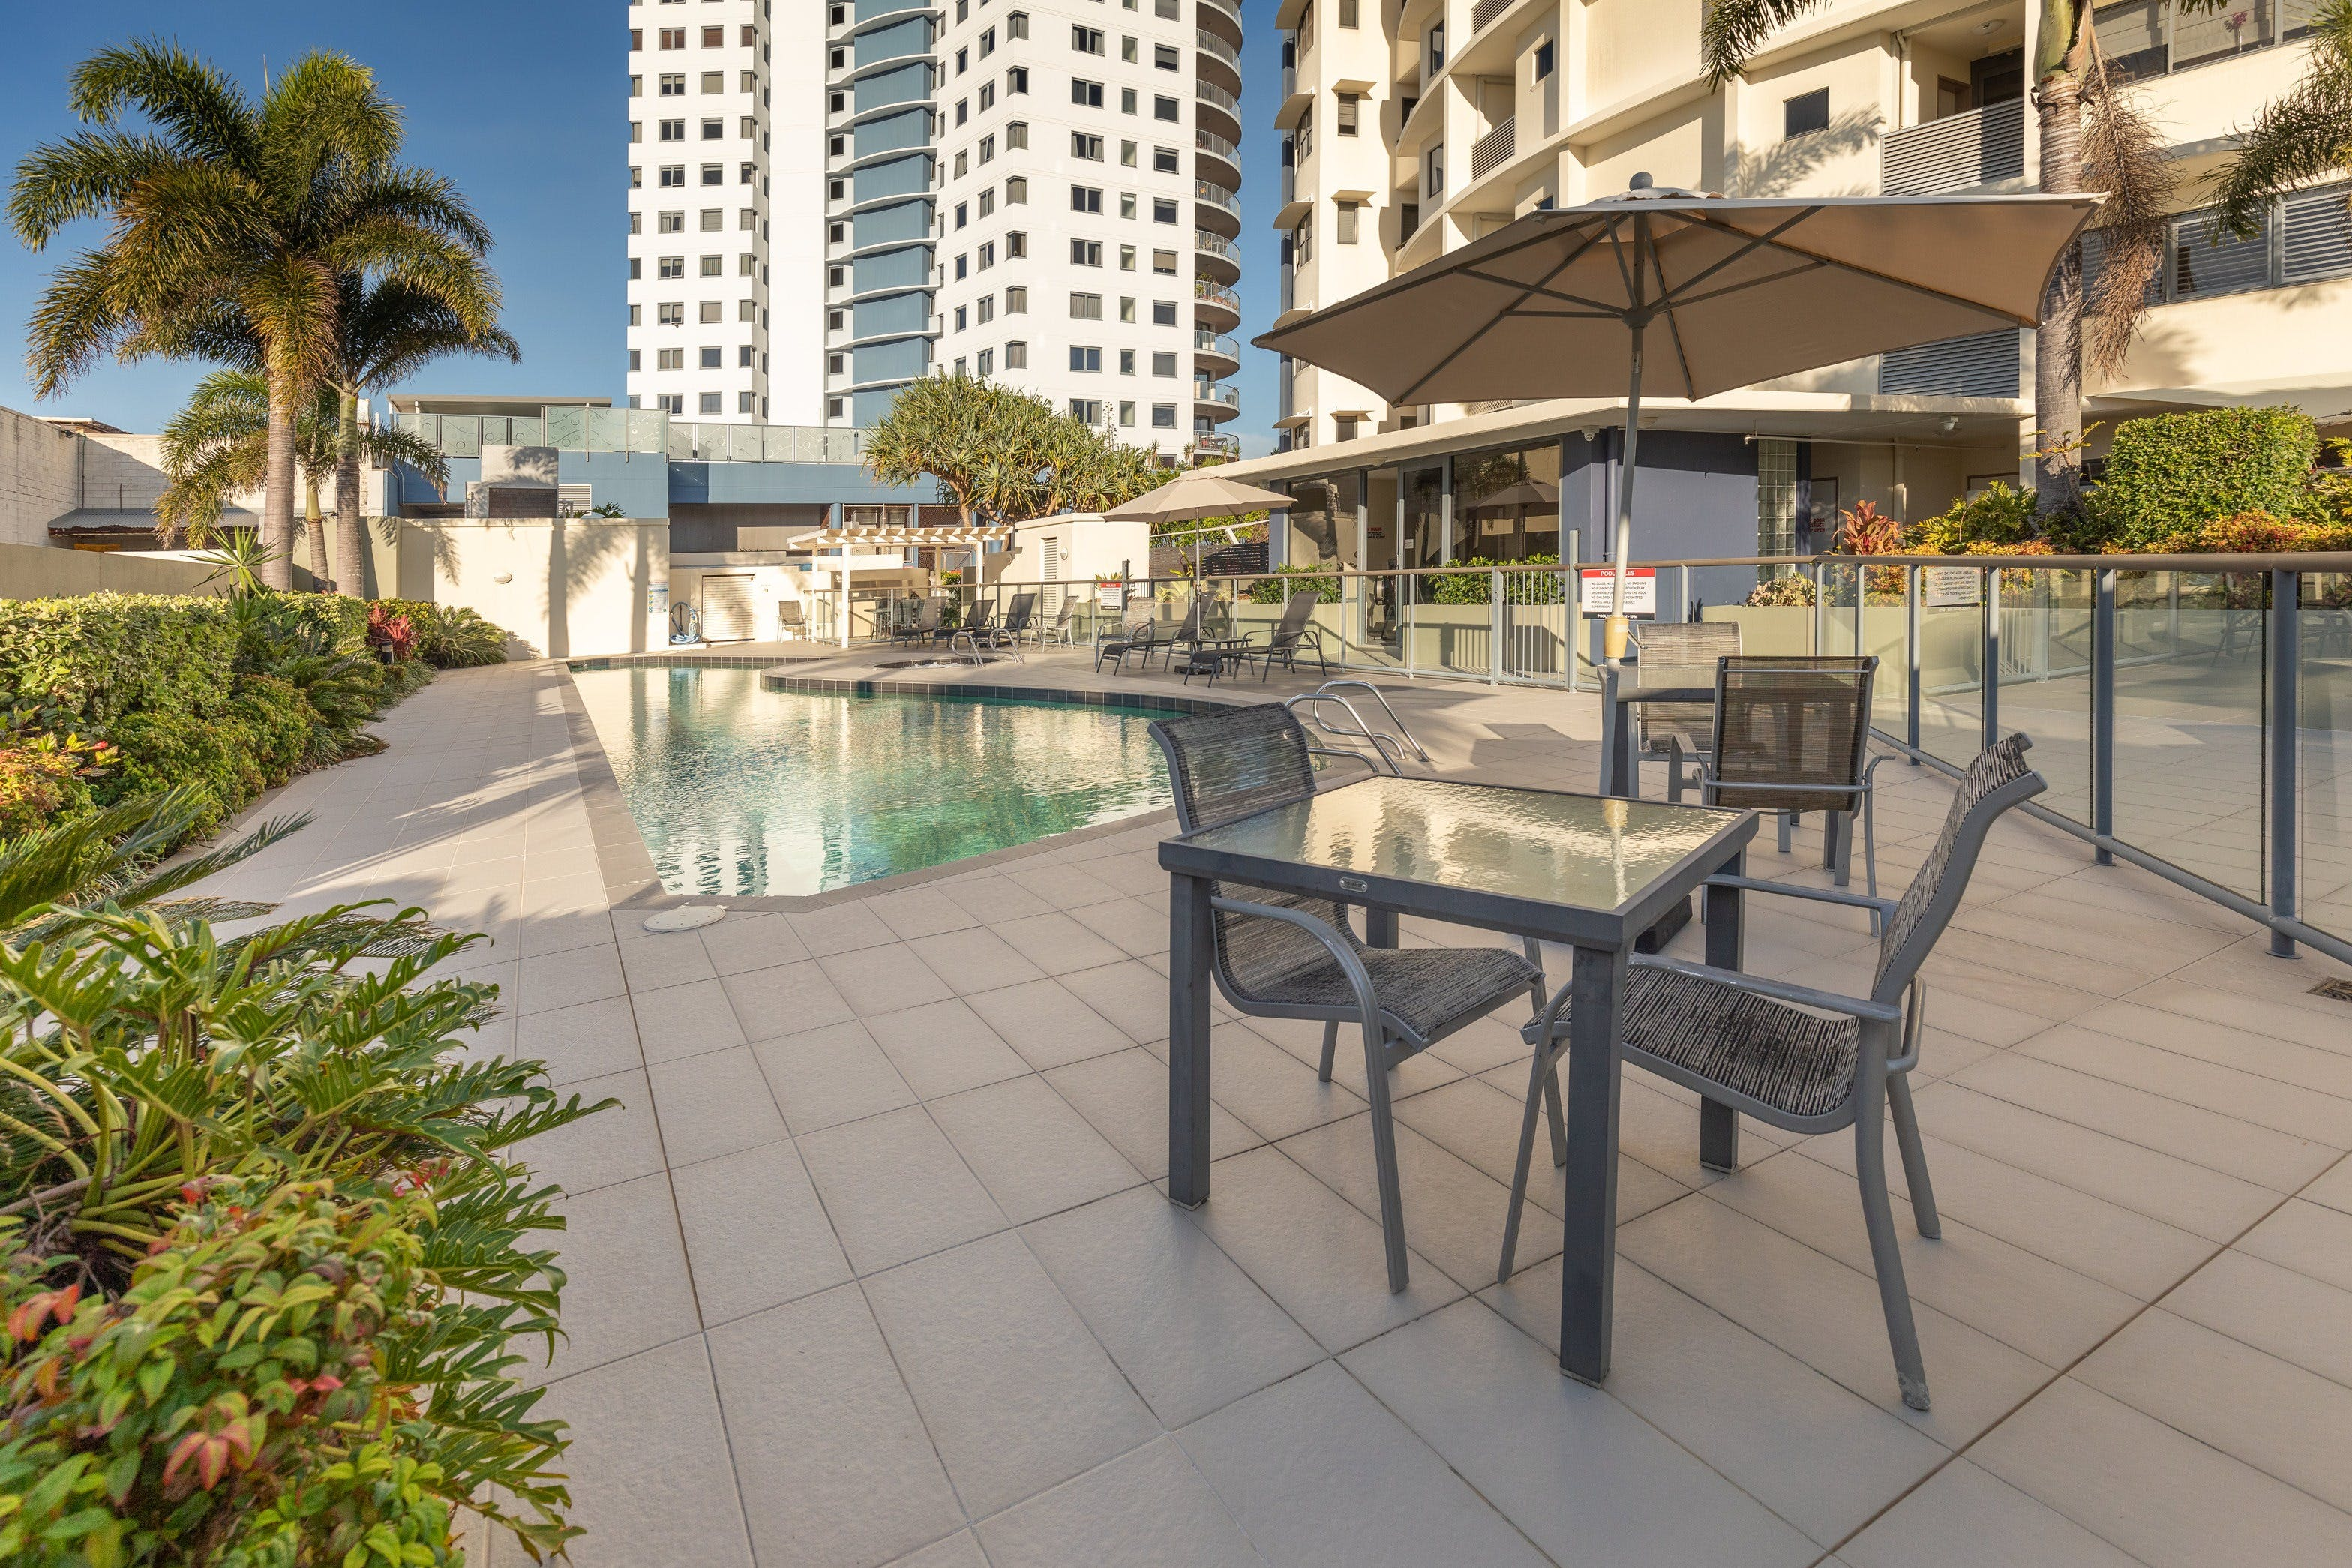 The Waterford Prestige Apartments